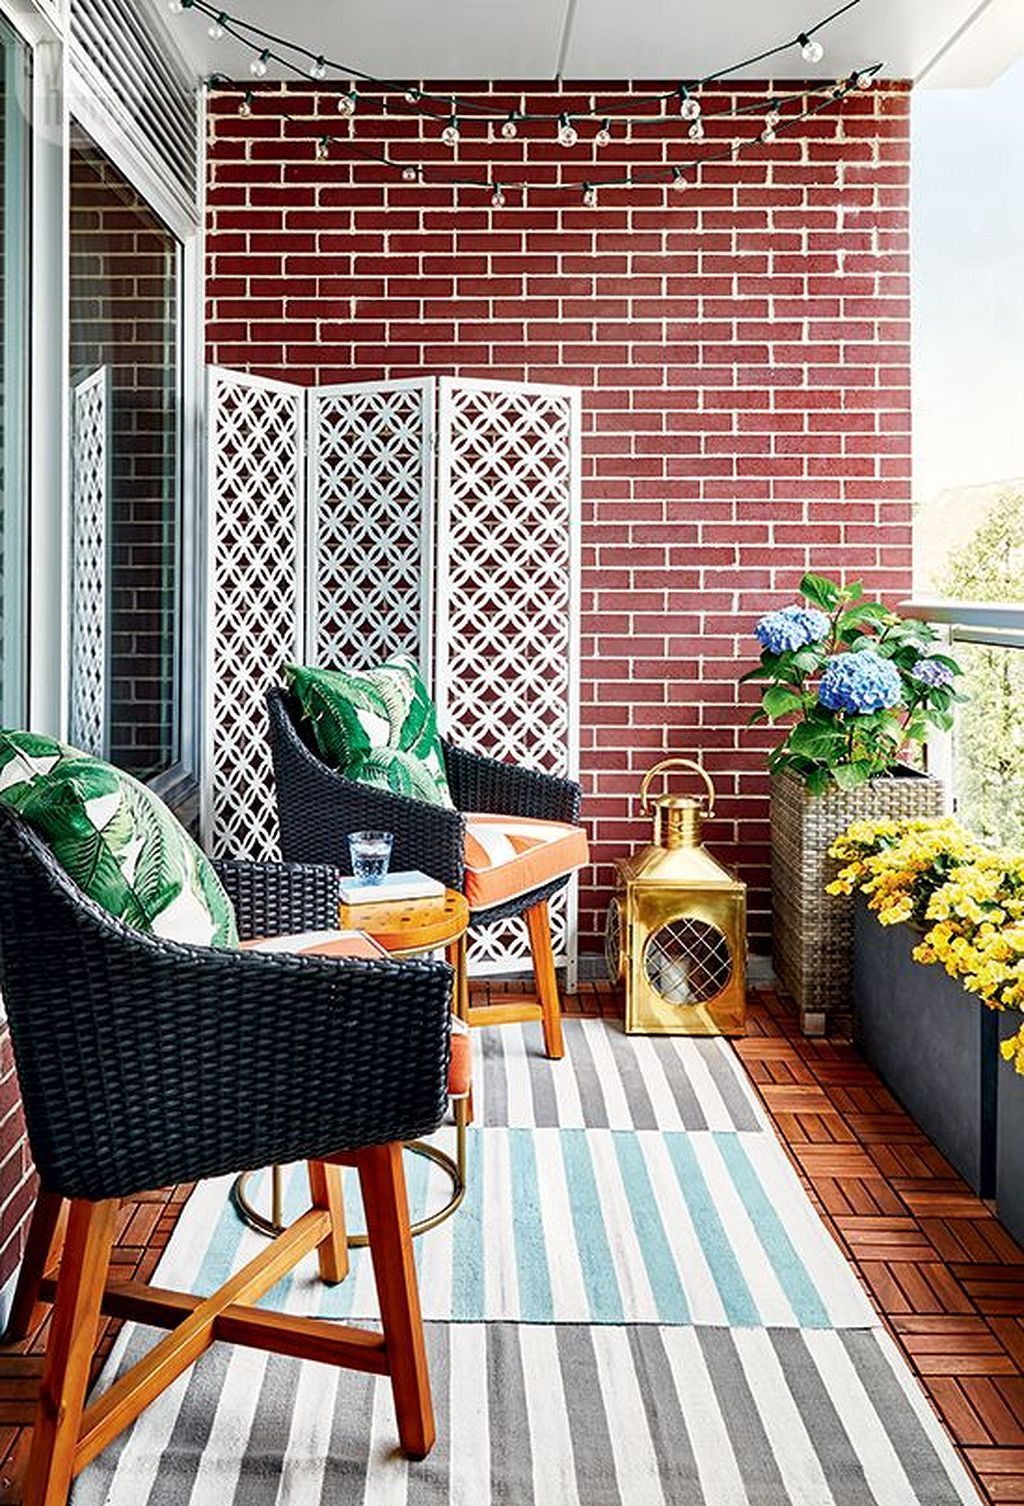 Small Apartment Balcony Decor Ideas On A Budget (14)  Balcony